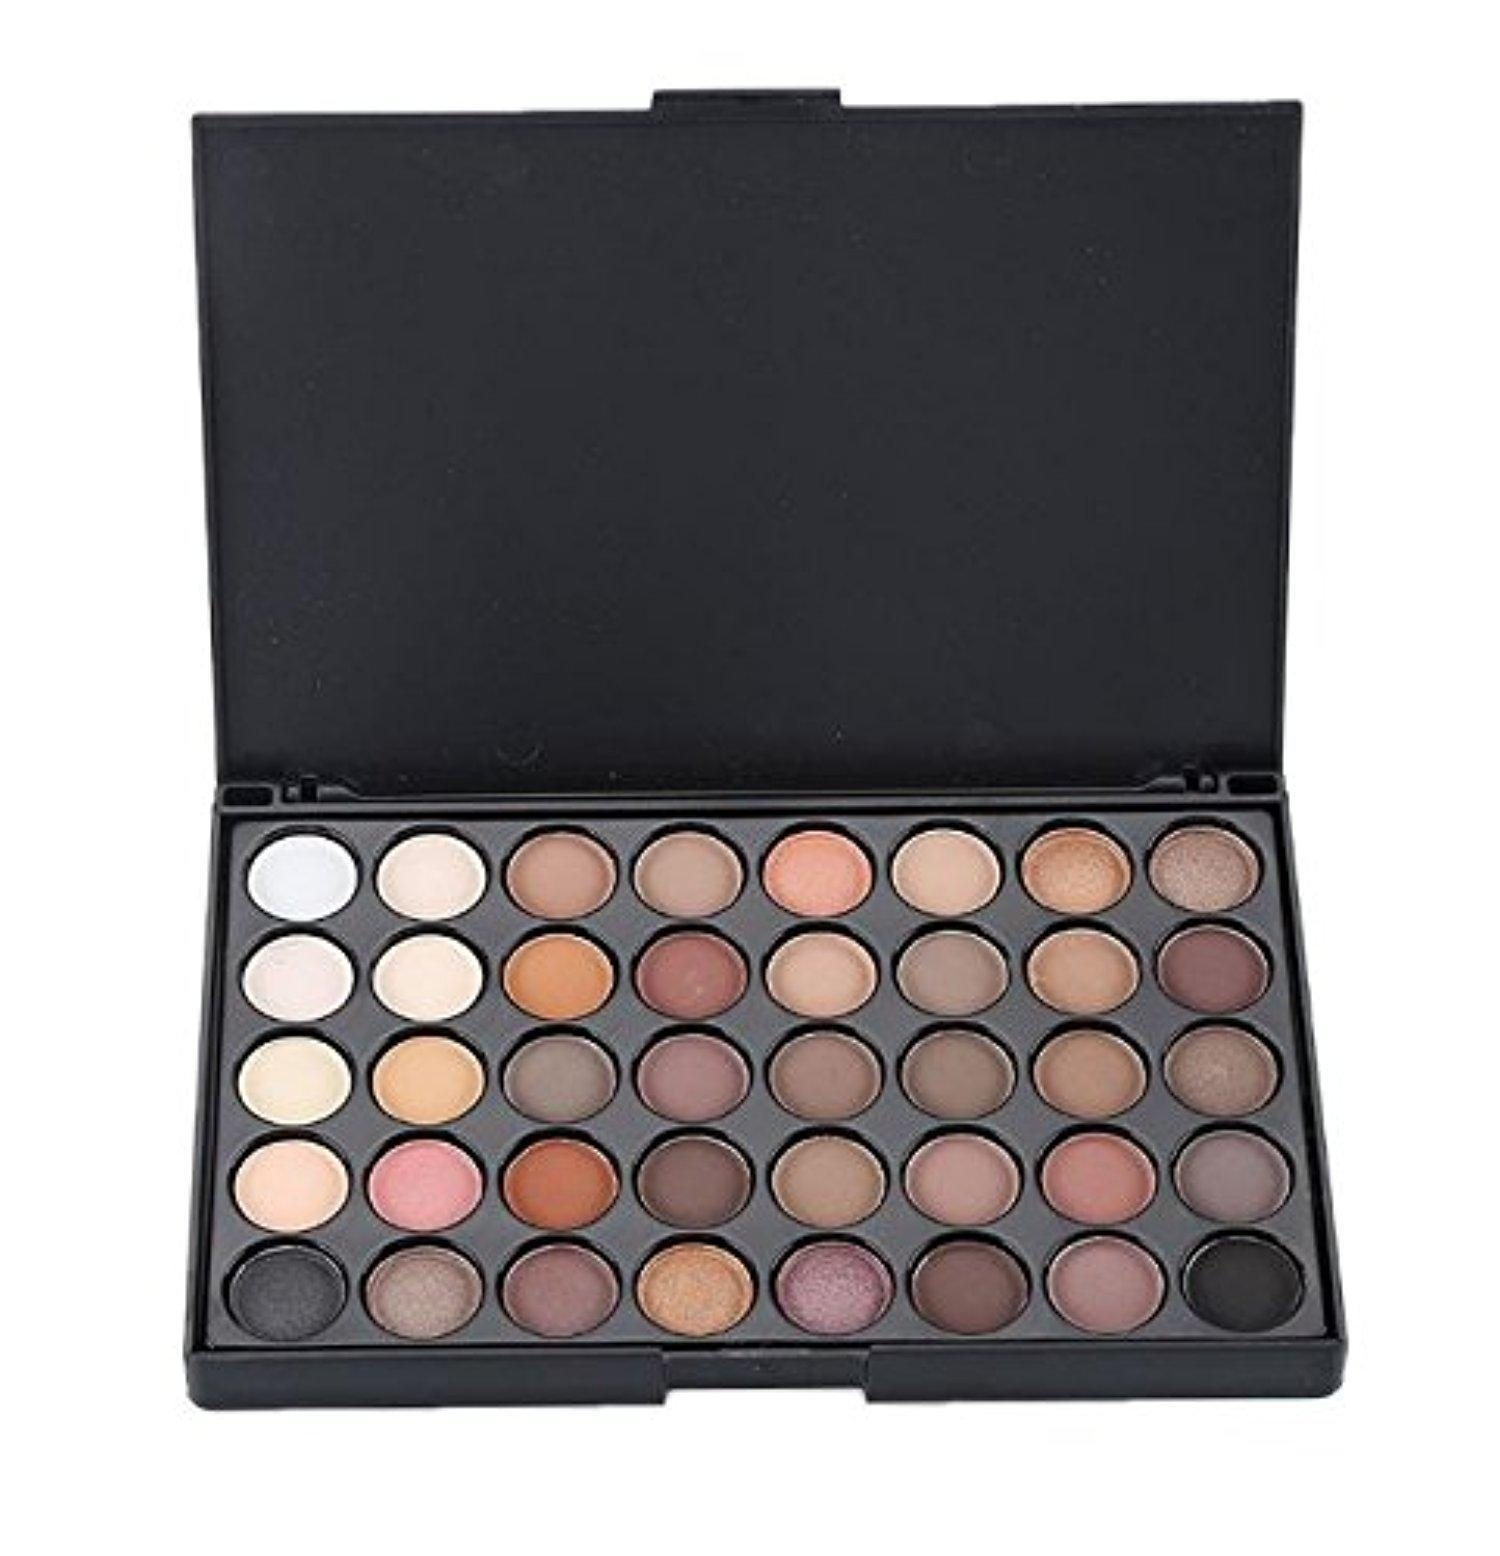 Cosmetic Matte Eyeshadow Cream Eye Shadow Makeup Palette Shimmer Set 40 Color by Micro Shops